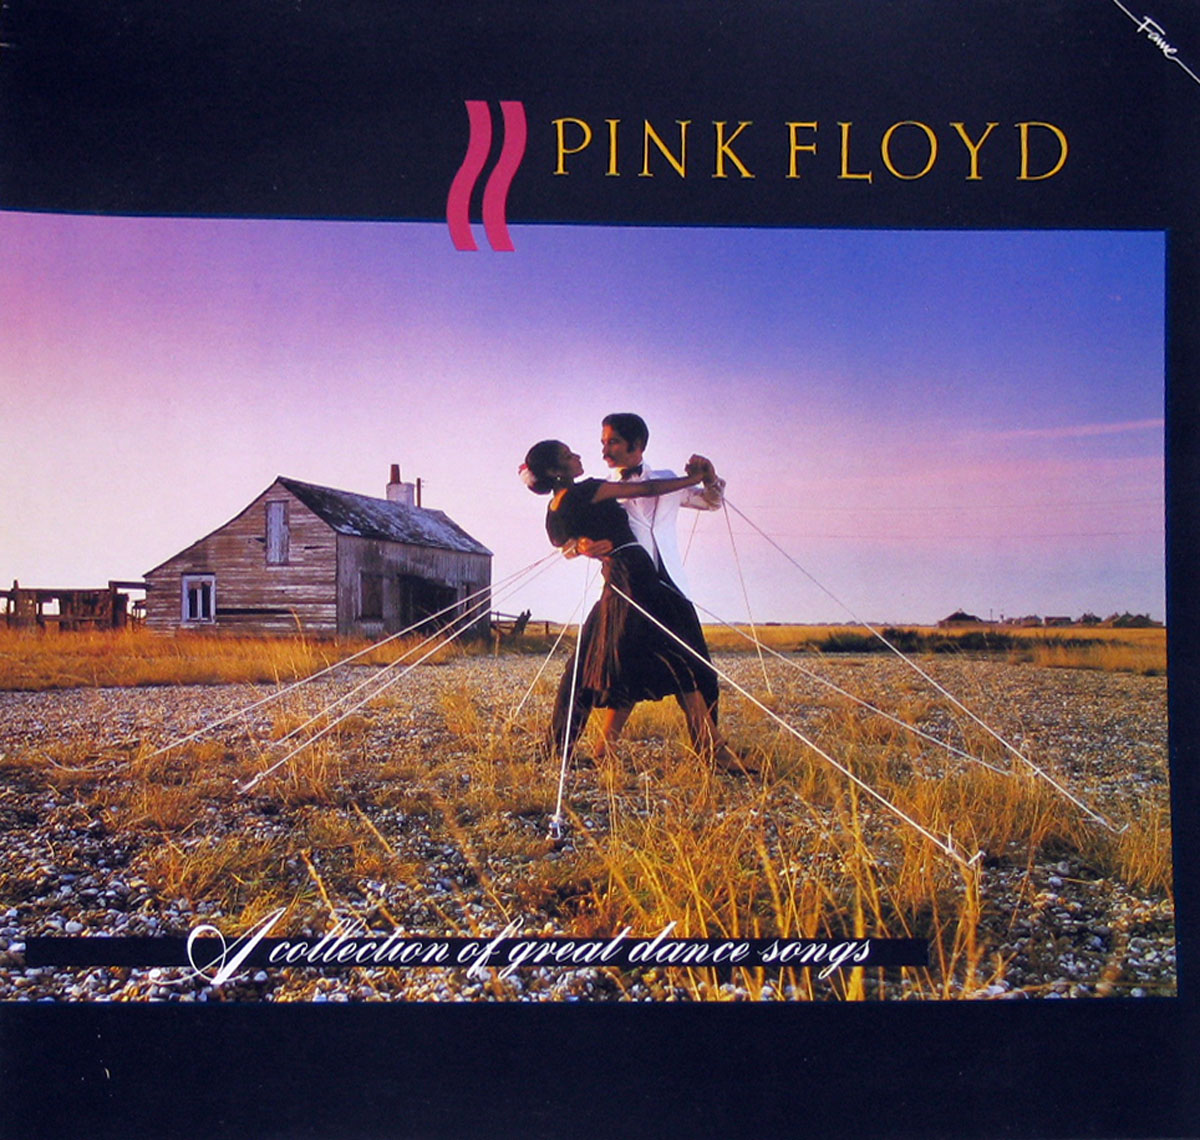 High Resolution Photos of pink floyd collection great dance uk fame